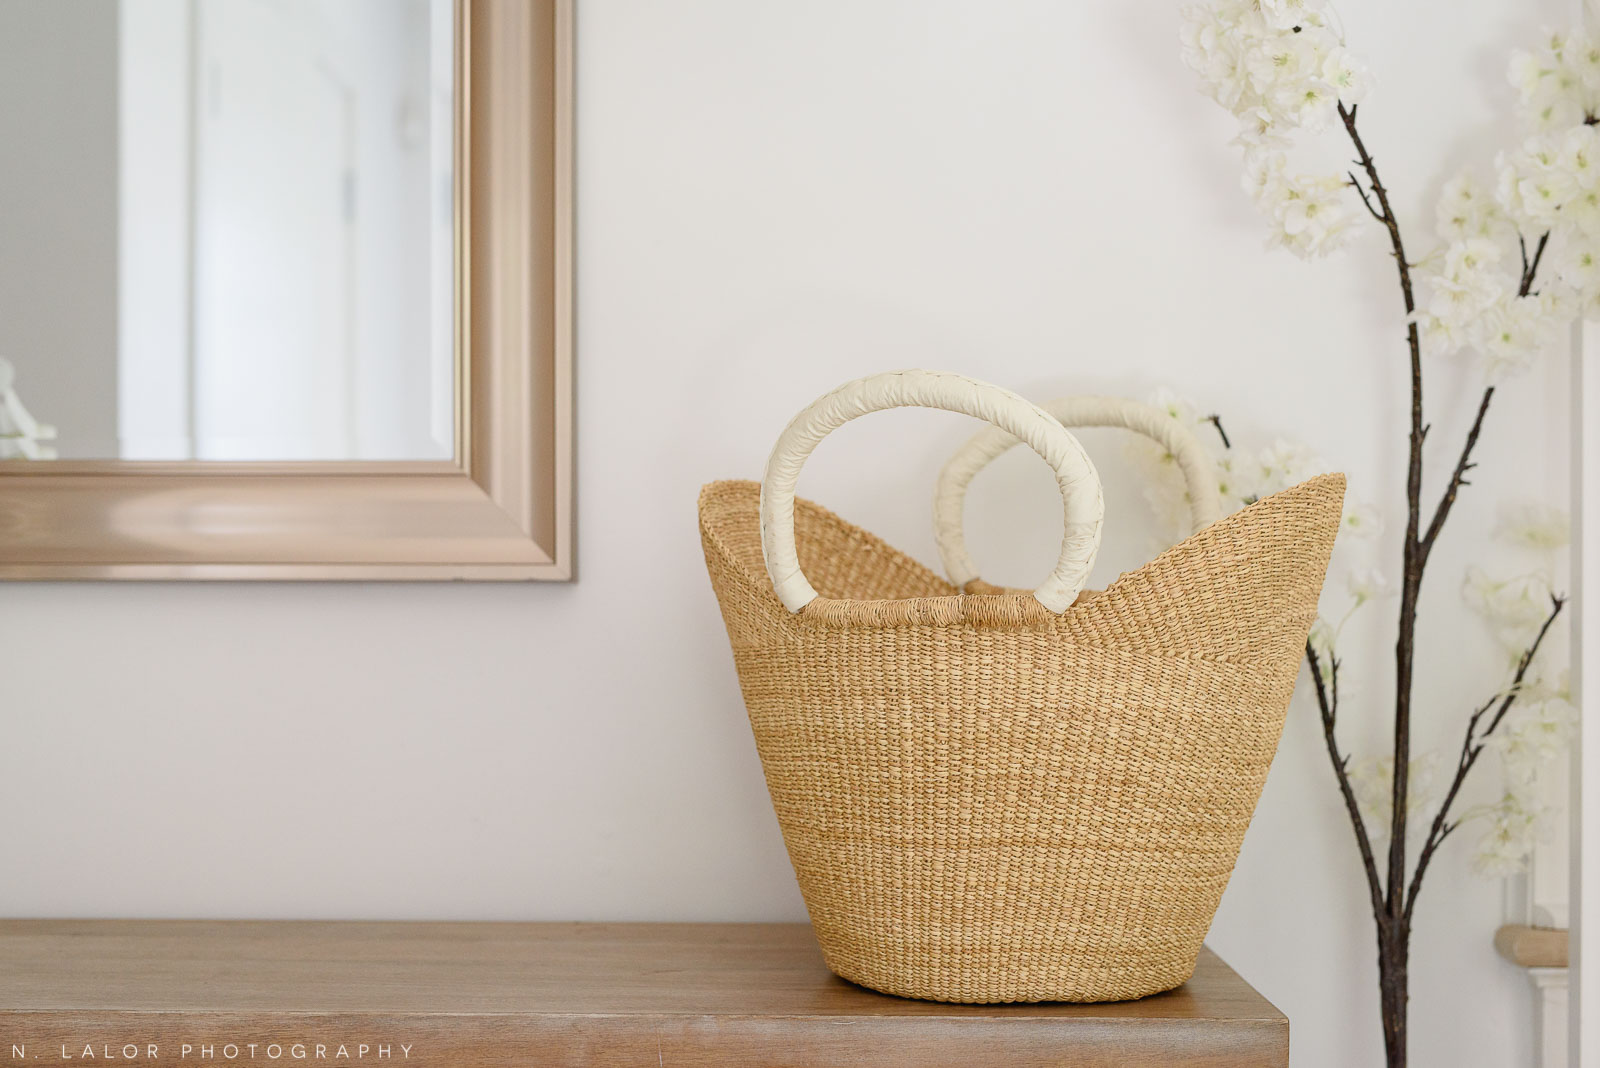 Handmade basketweave bag with handles. Local Small Business photoshoot for METTA10 by N. Lalor Photography. Westport, Connecticut.